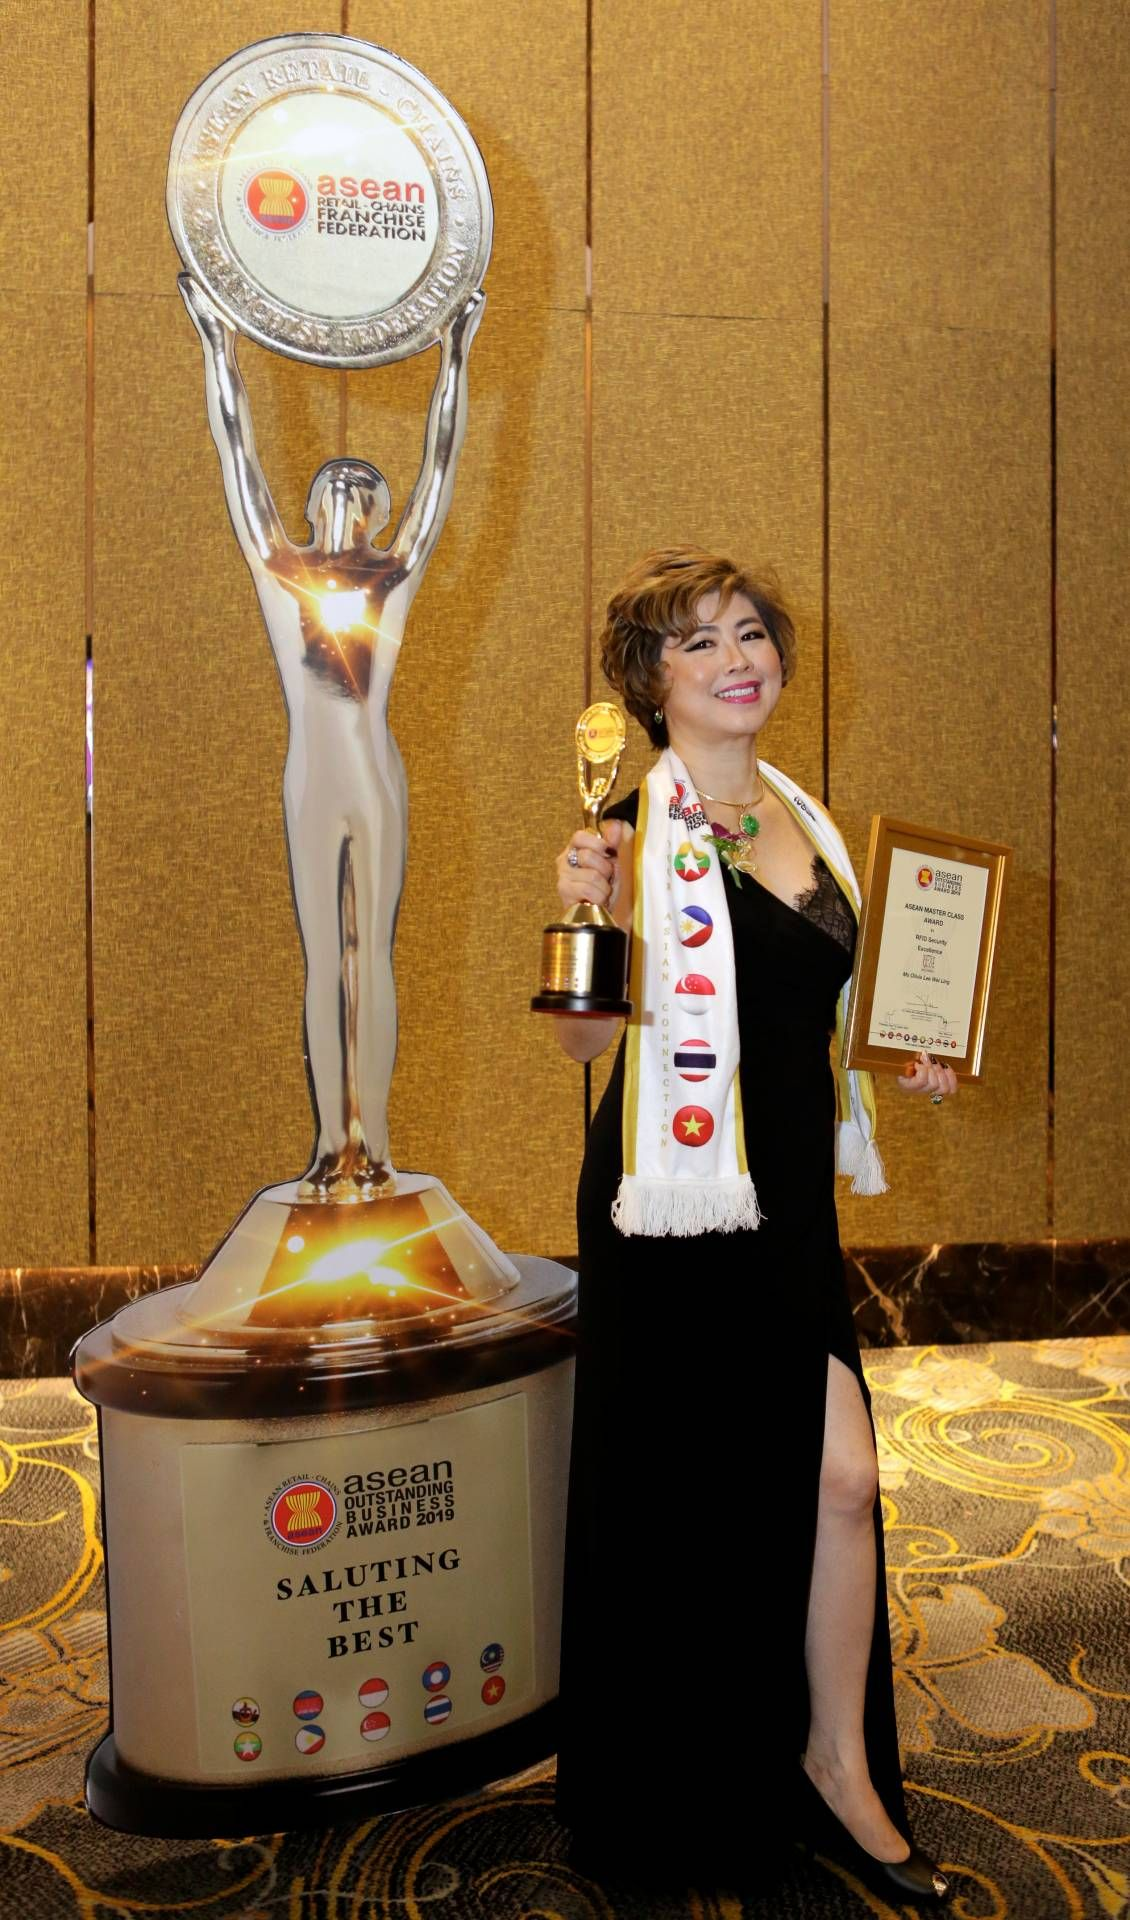 Lee with her recent award at the Asean Outstanding Business Awards 2019. Photo: The Star/Yap Chee Hong